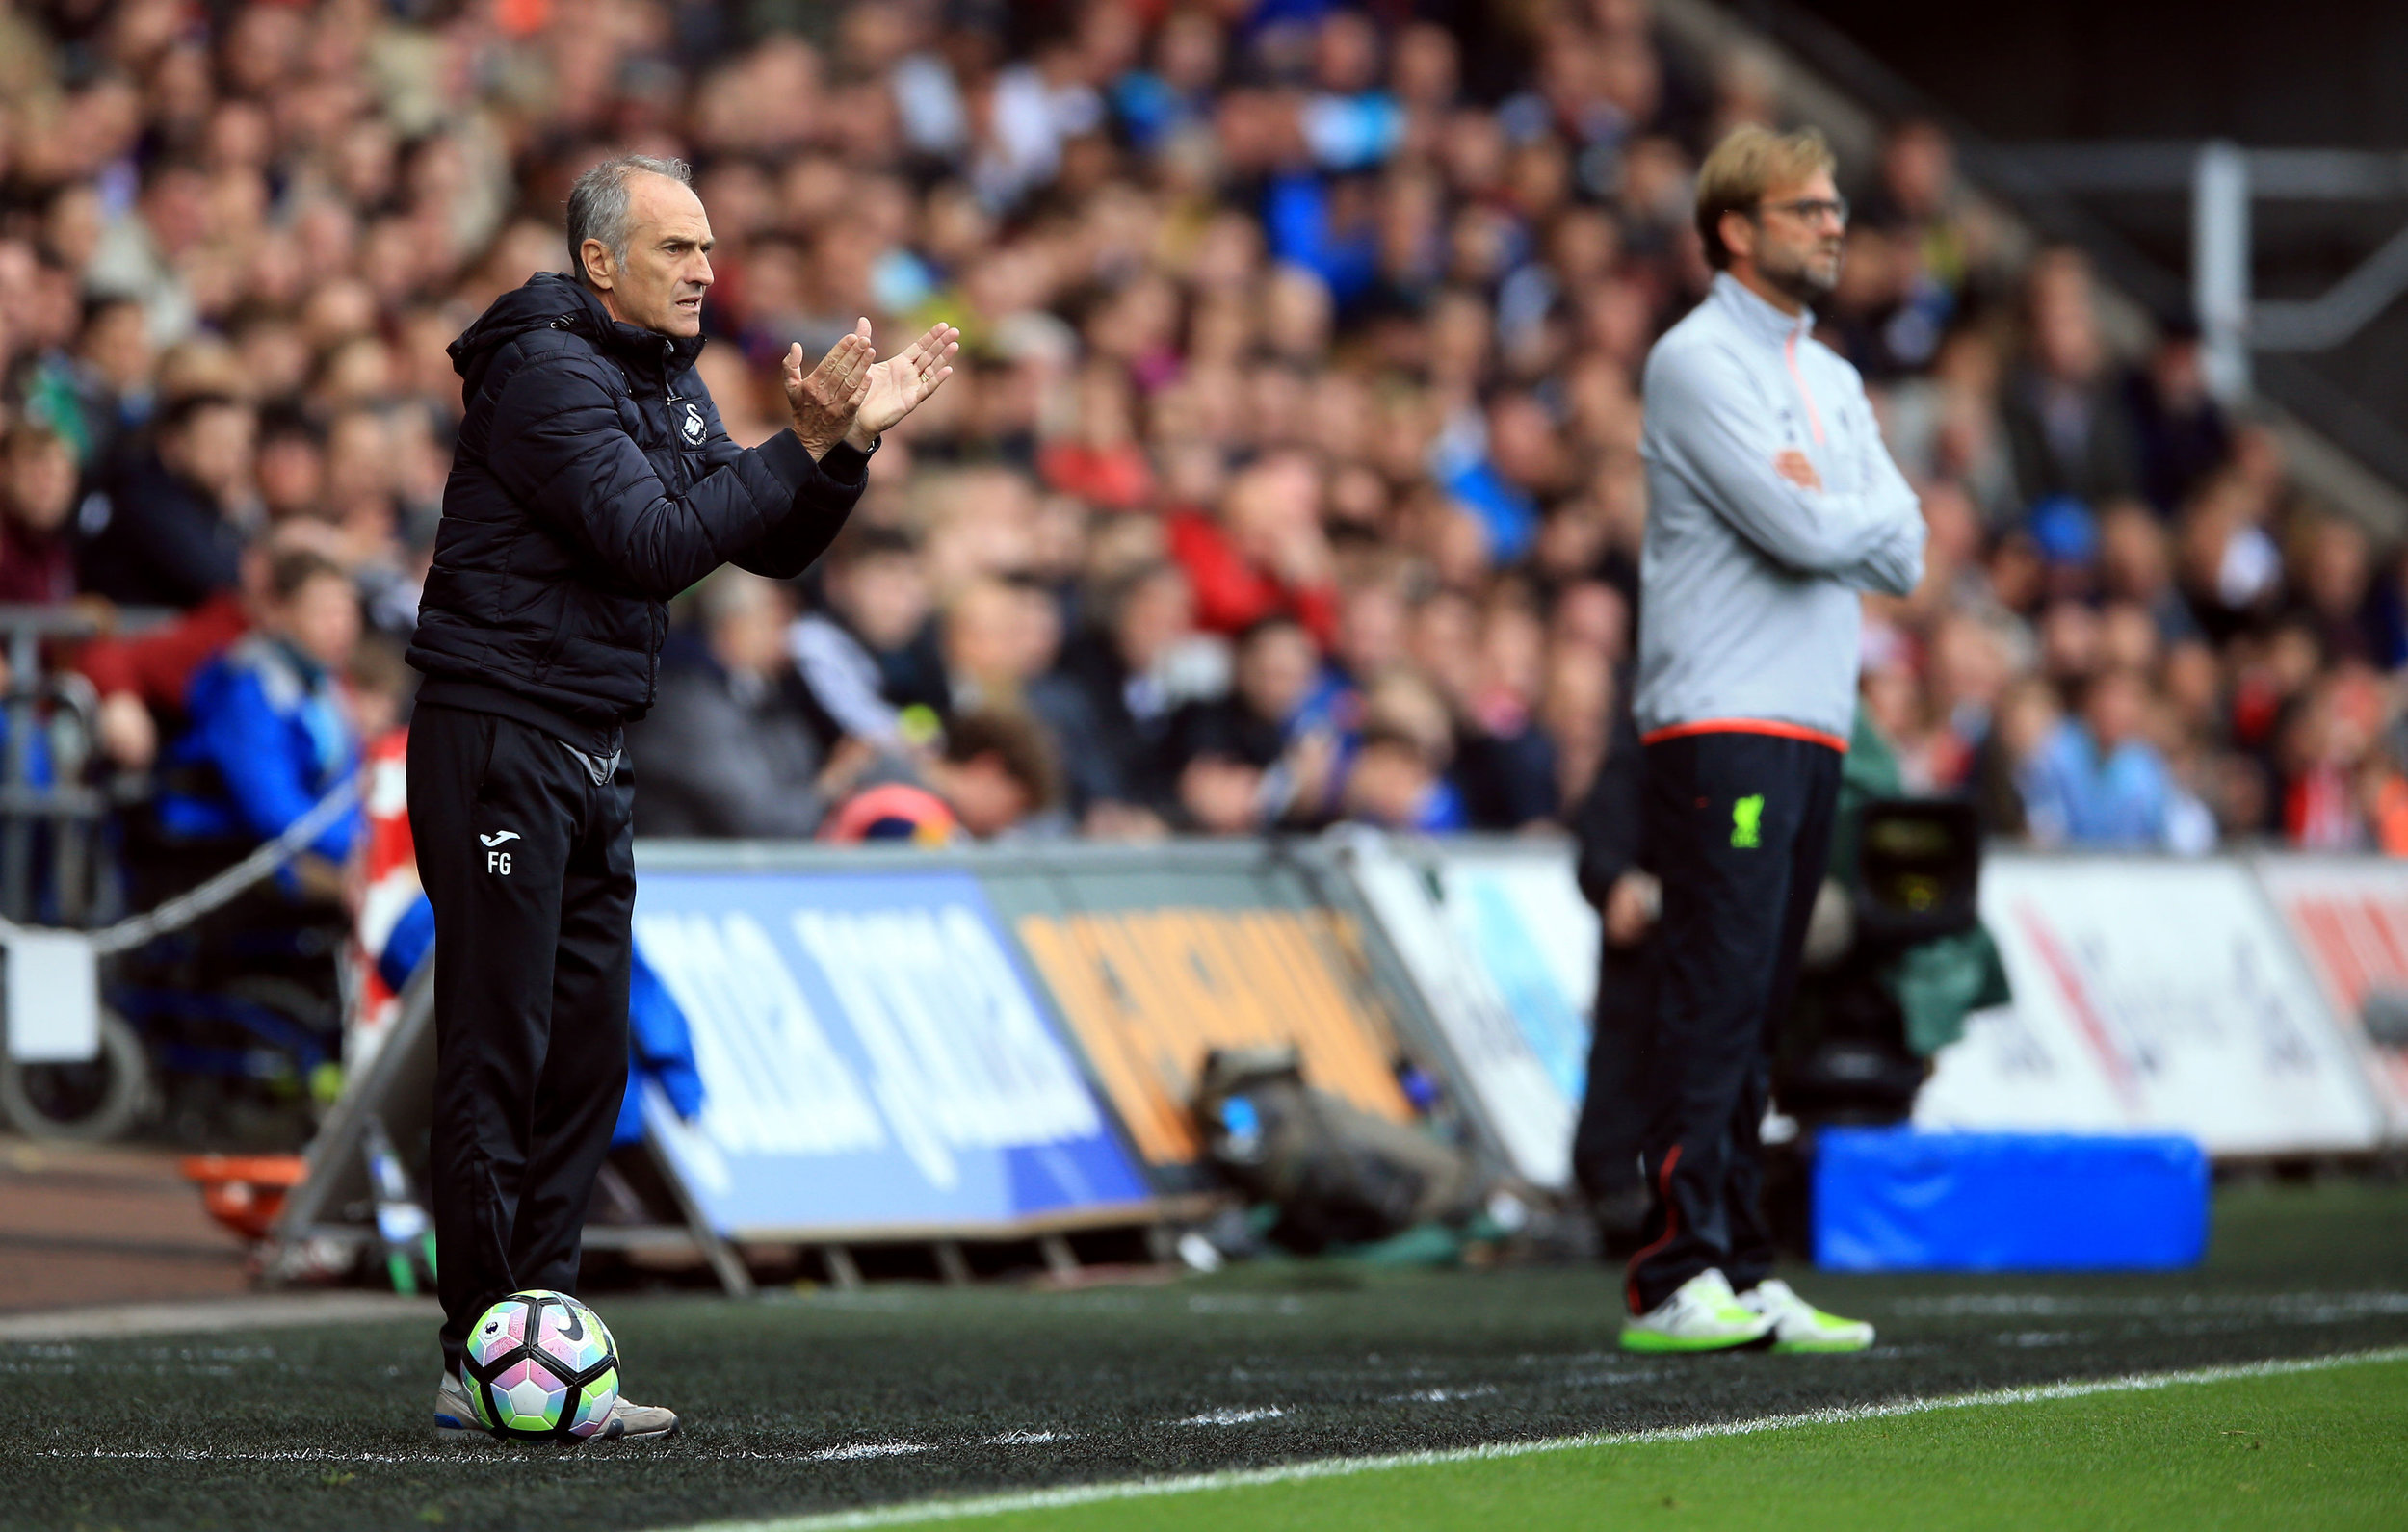 Swansea City manager Francesco Guidolin encourages his players, with Liverpool's manager Jurgen Klopp, right, during their English Premier League soccer match at the Liberty Stadium, Swansea, England, Saturday Oct. 1, 2016. (Nigel French / PA via AP)